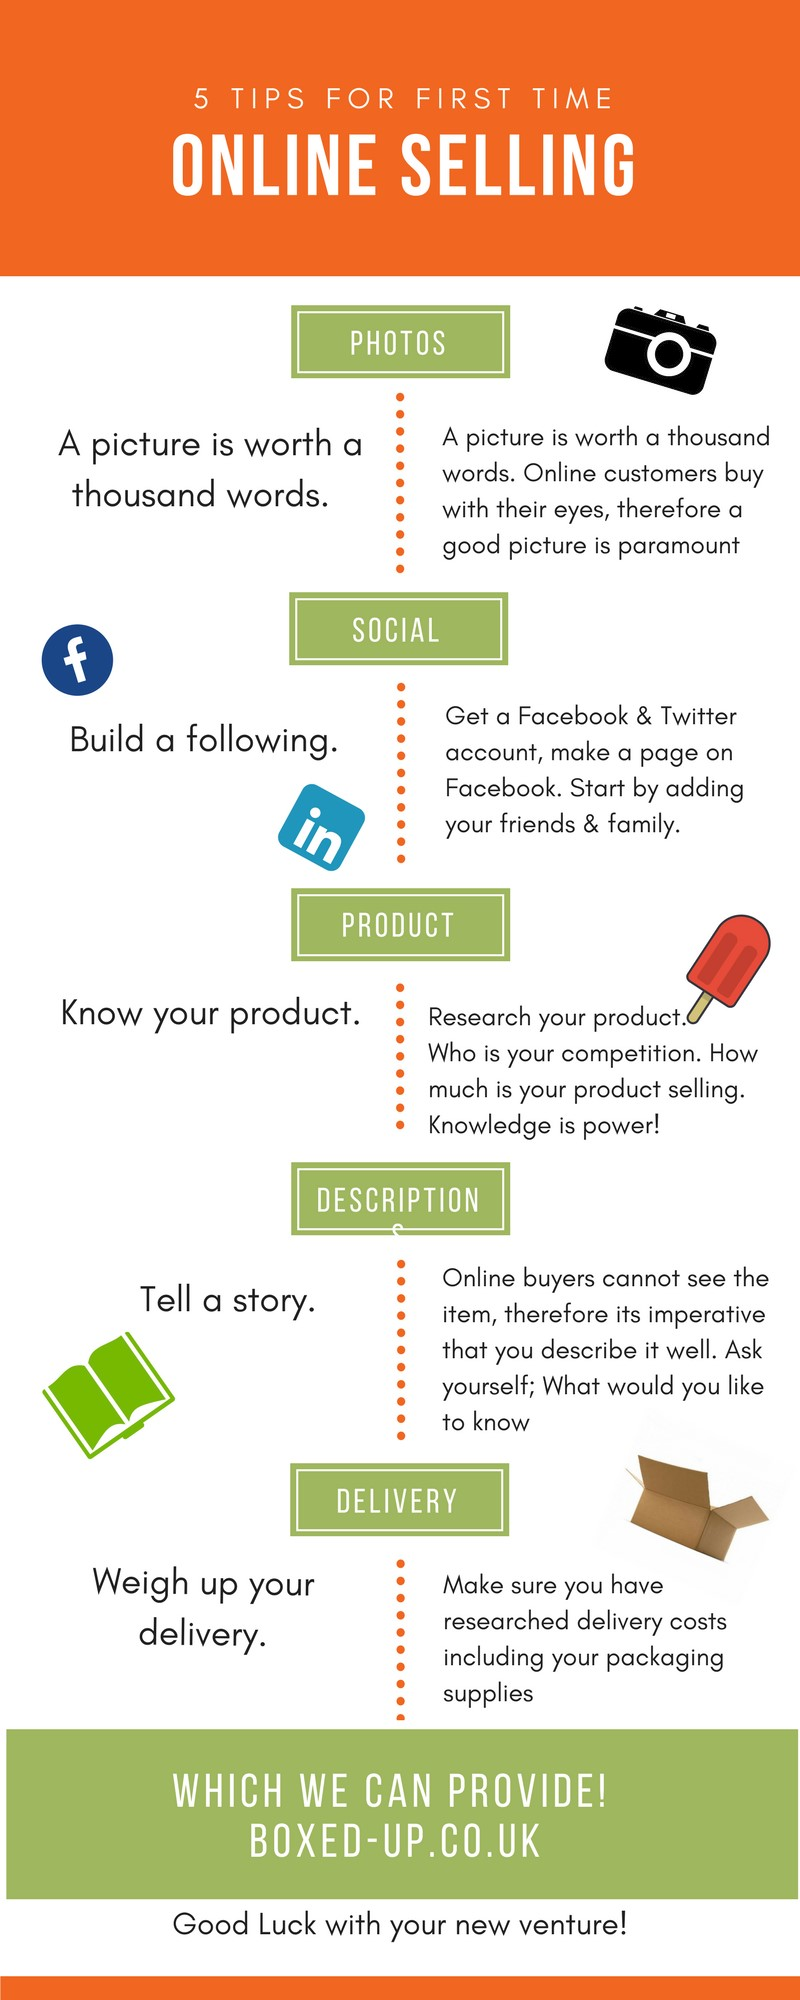 5 tips for first time online sellers